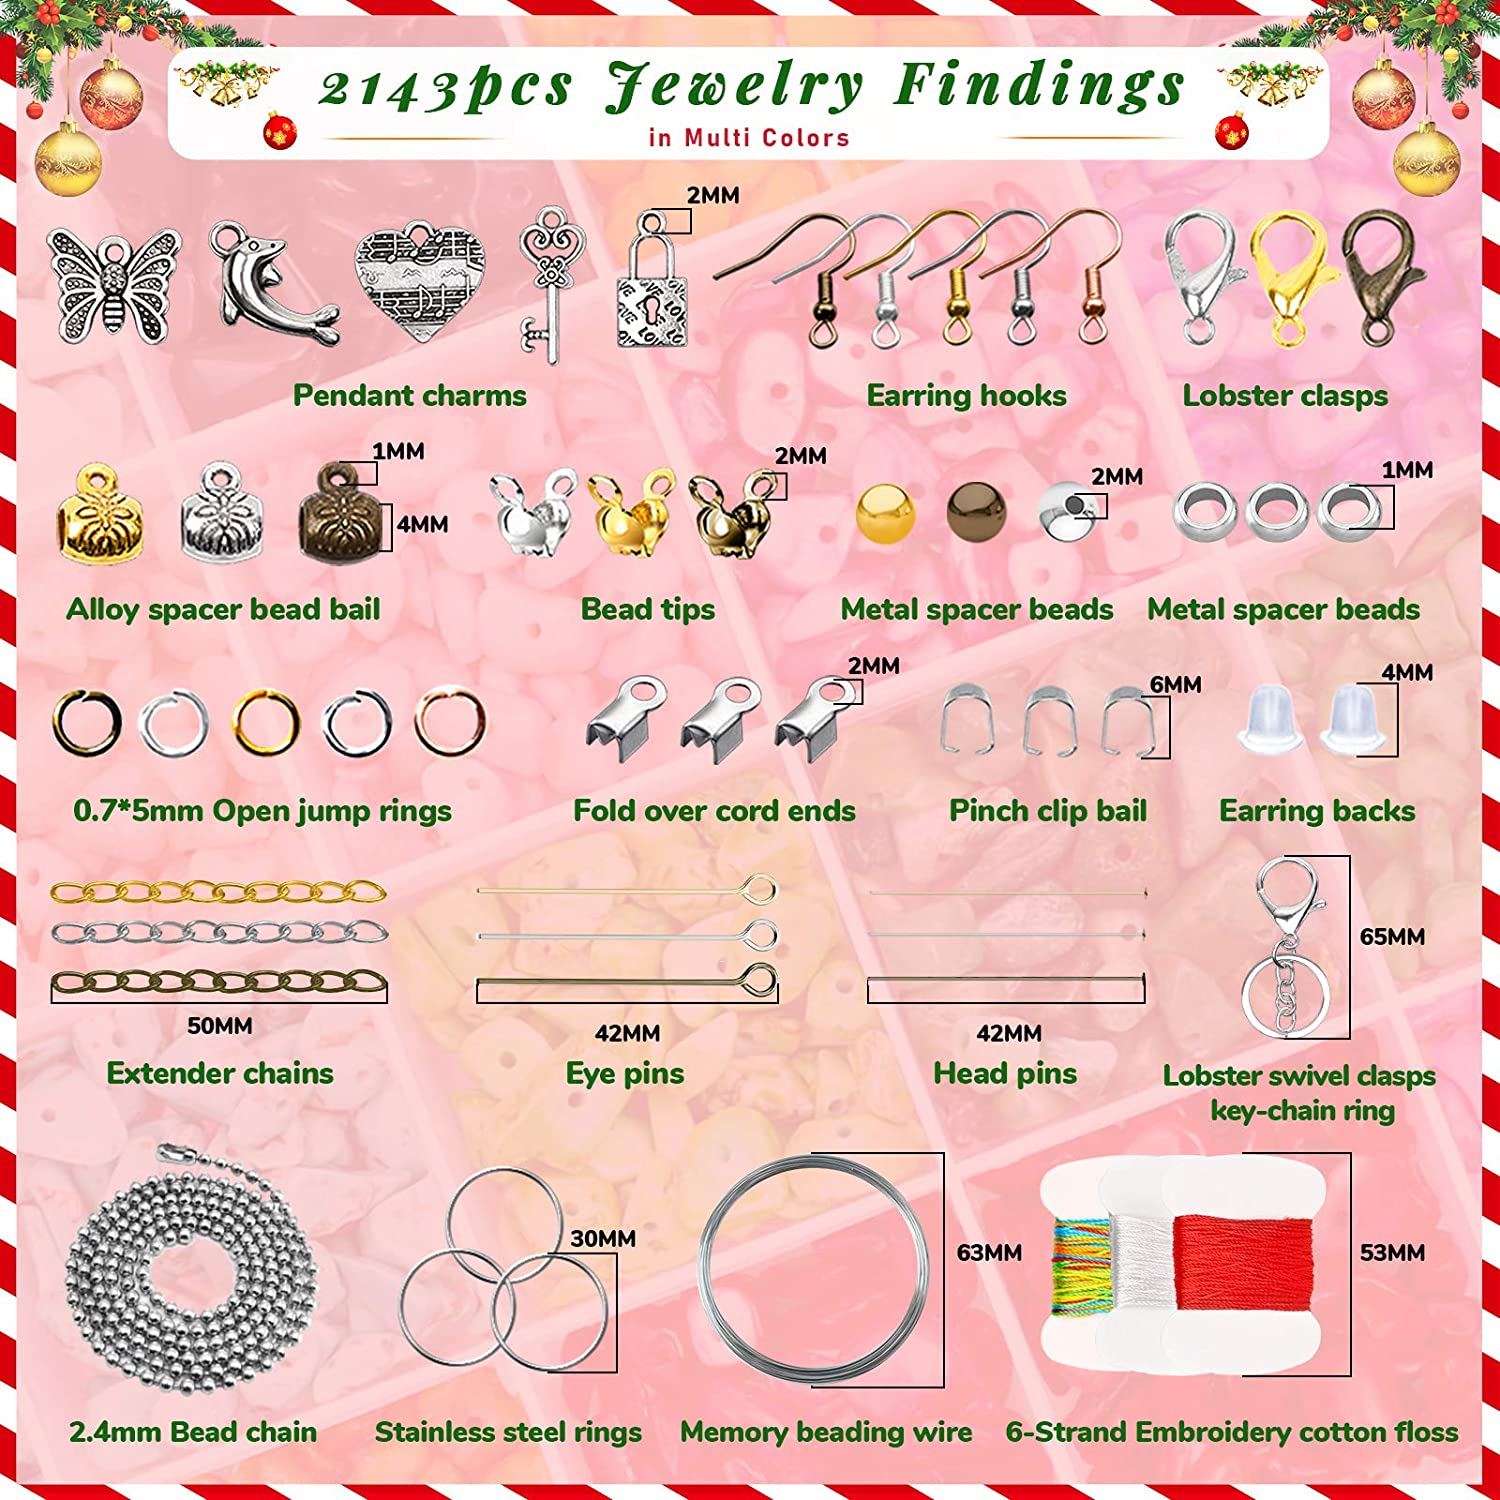 Yholin 4049pcs Irregular Gemstone Beads Kit,24 Styles Natural Crystal Chips Stone Beads with Glass Beads Pearl Earring Hooks Head Pins Beading String Wire Tools for Earring Bracelet Jewelry Making